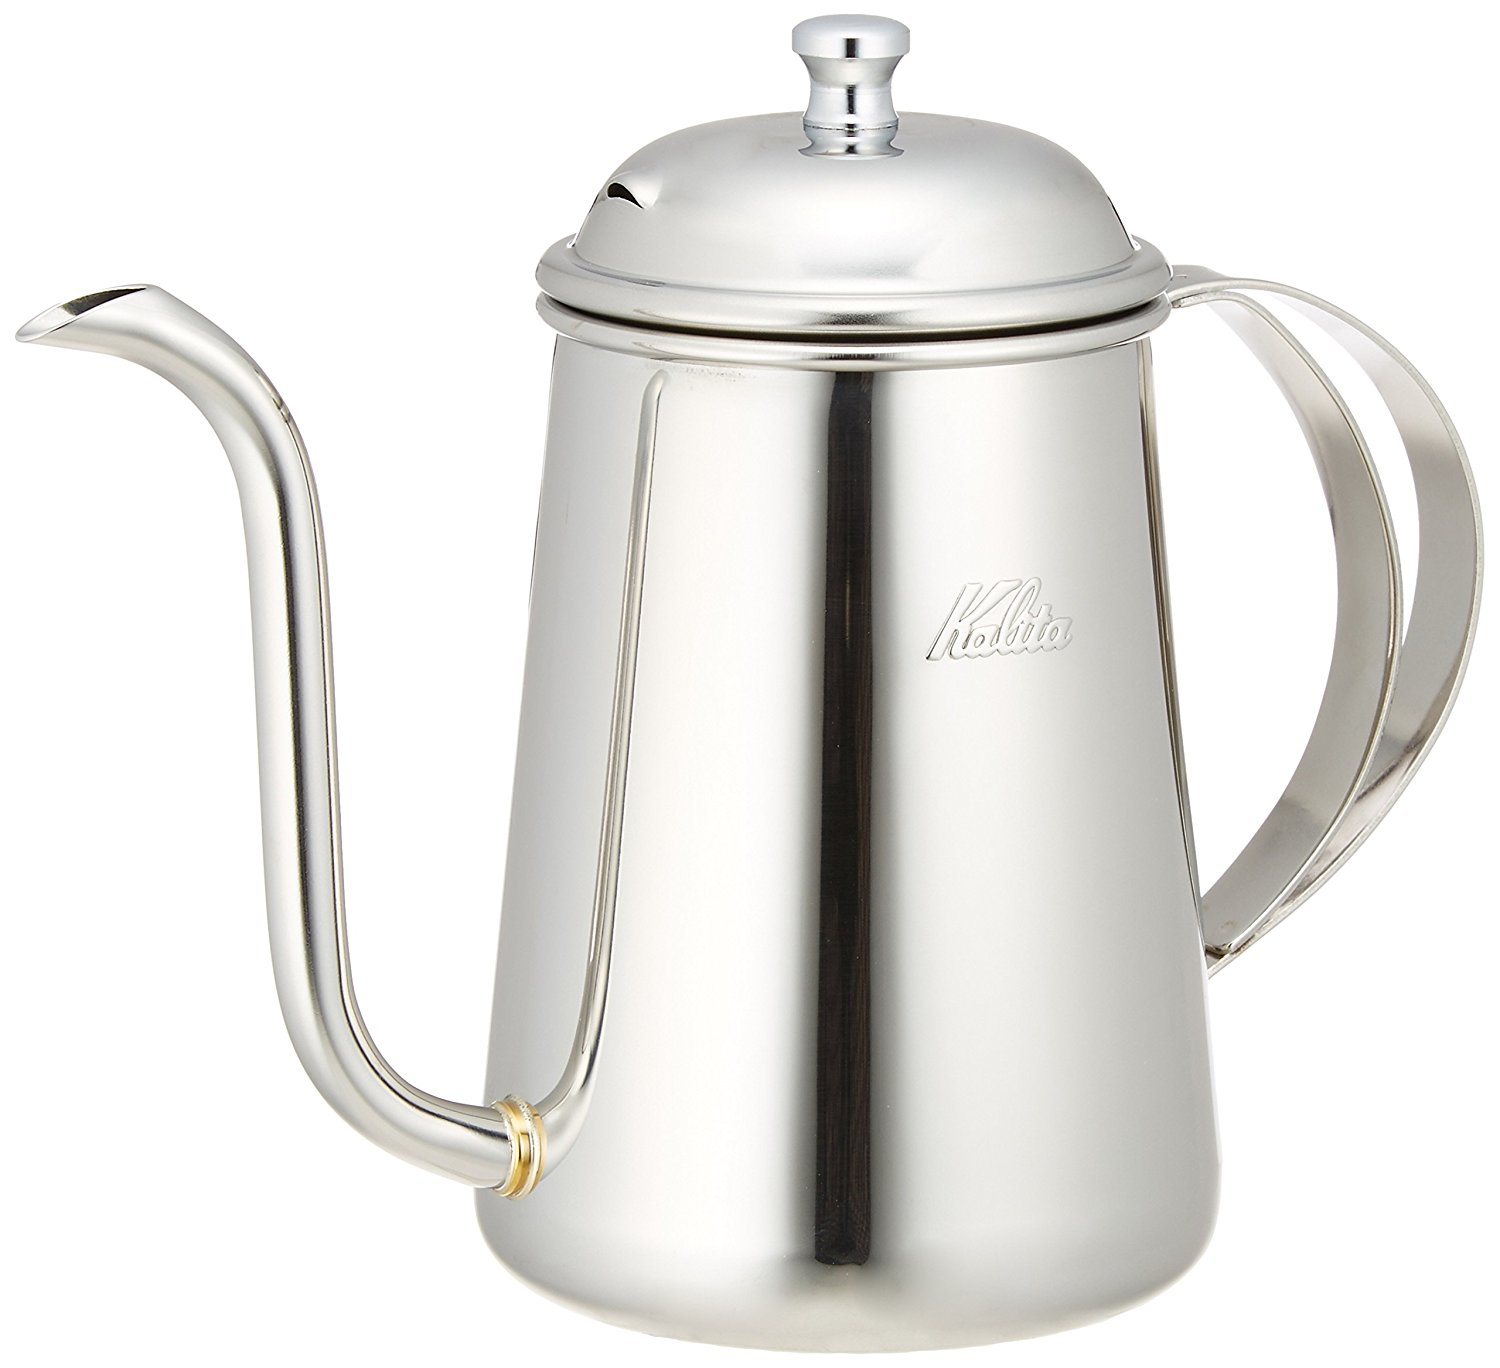 Kalita Thin Spout Kettle